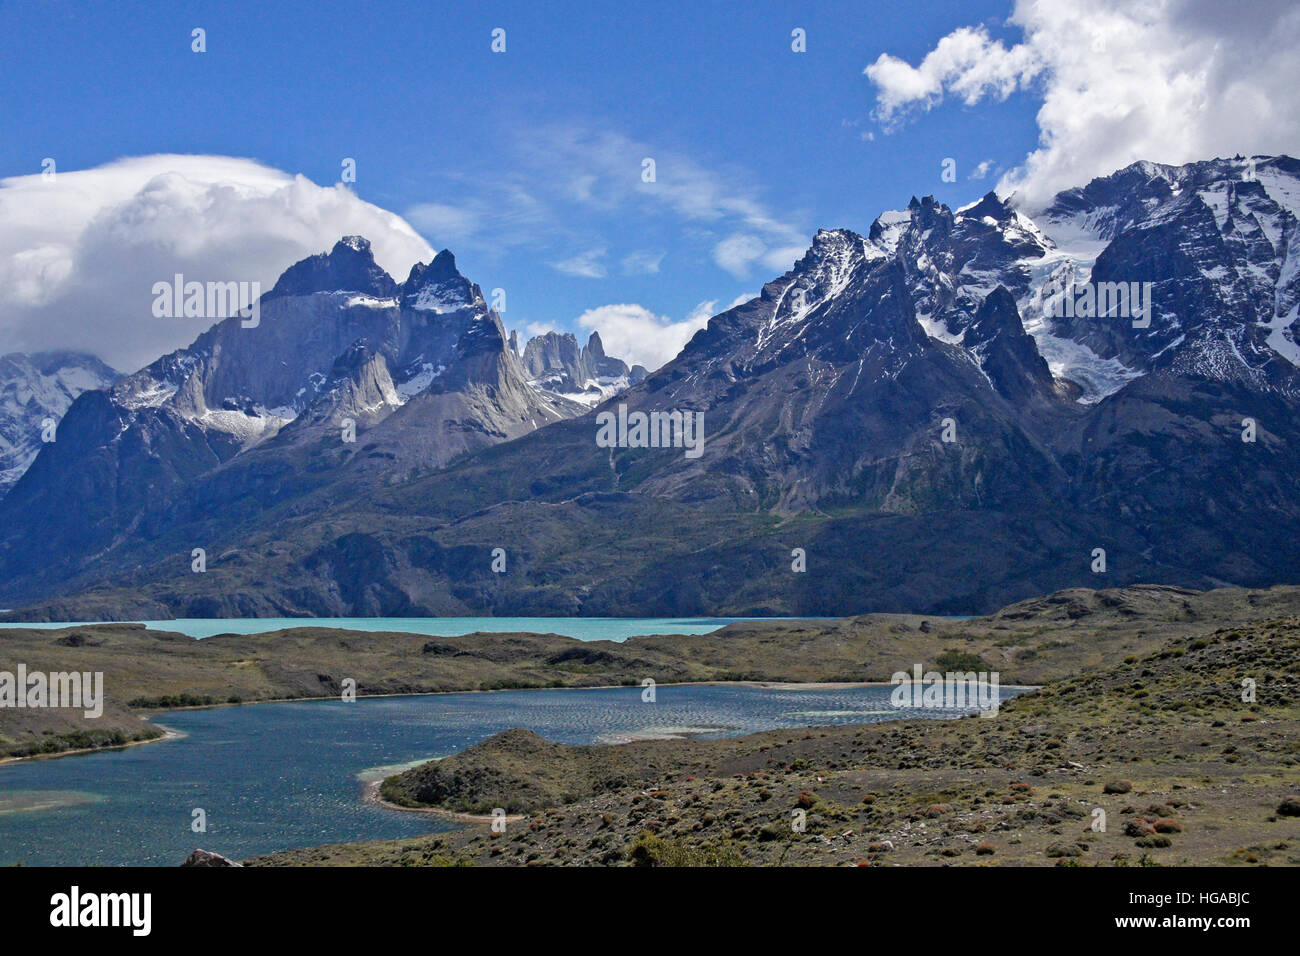 Lago Nordenskjold and the Paine Massif, Torres del Paine National Park, Patagonia, Chile - Stock Image